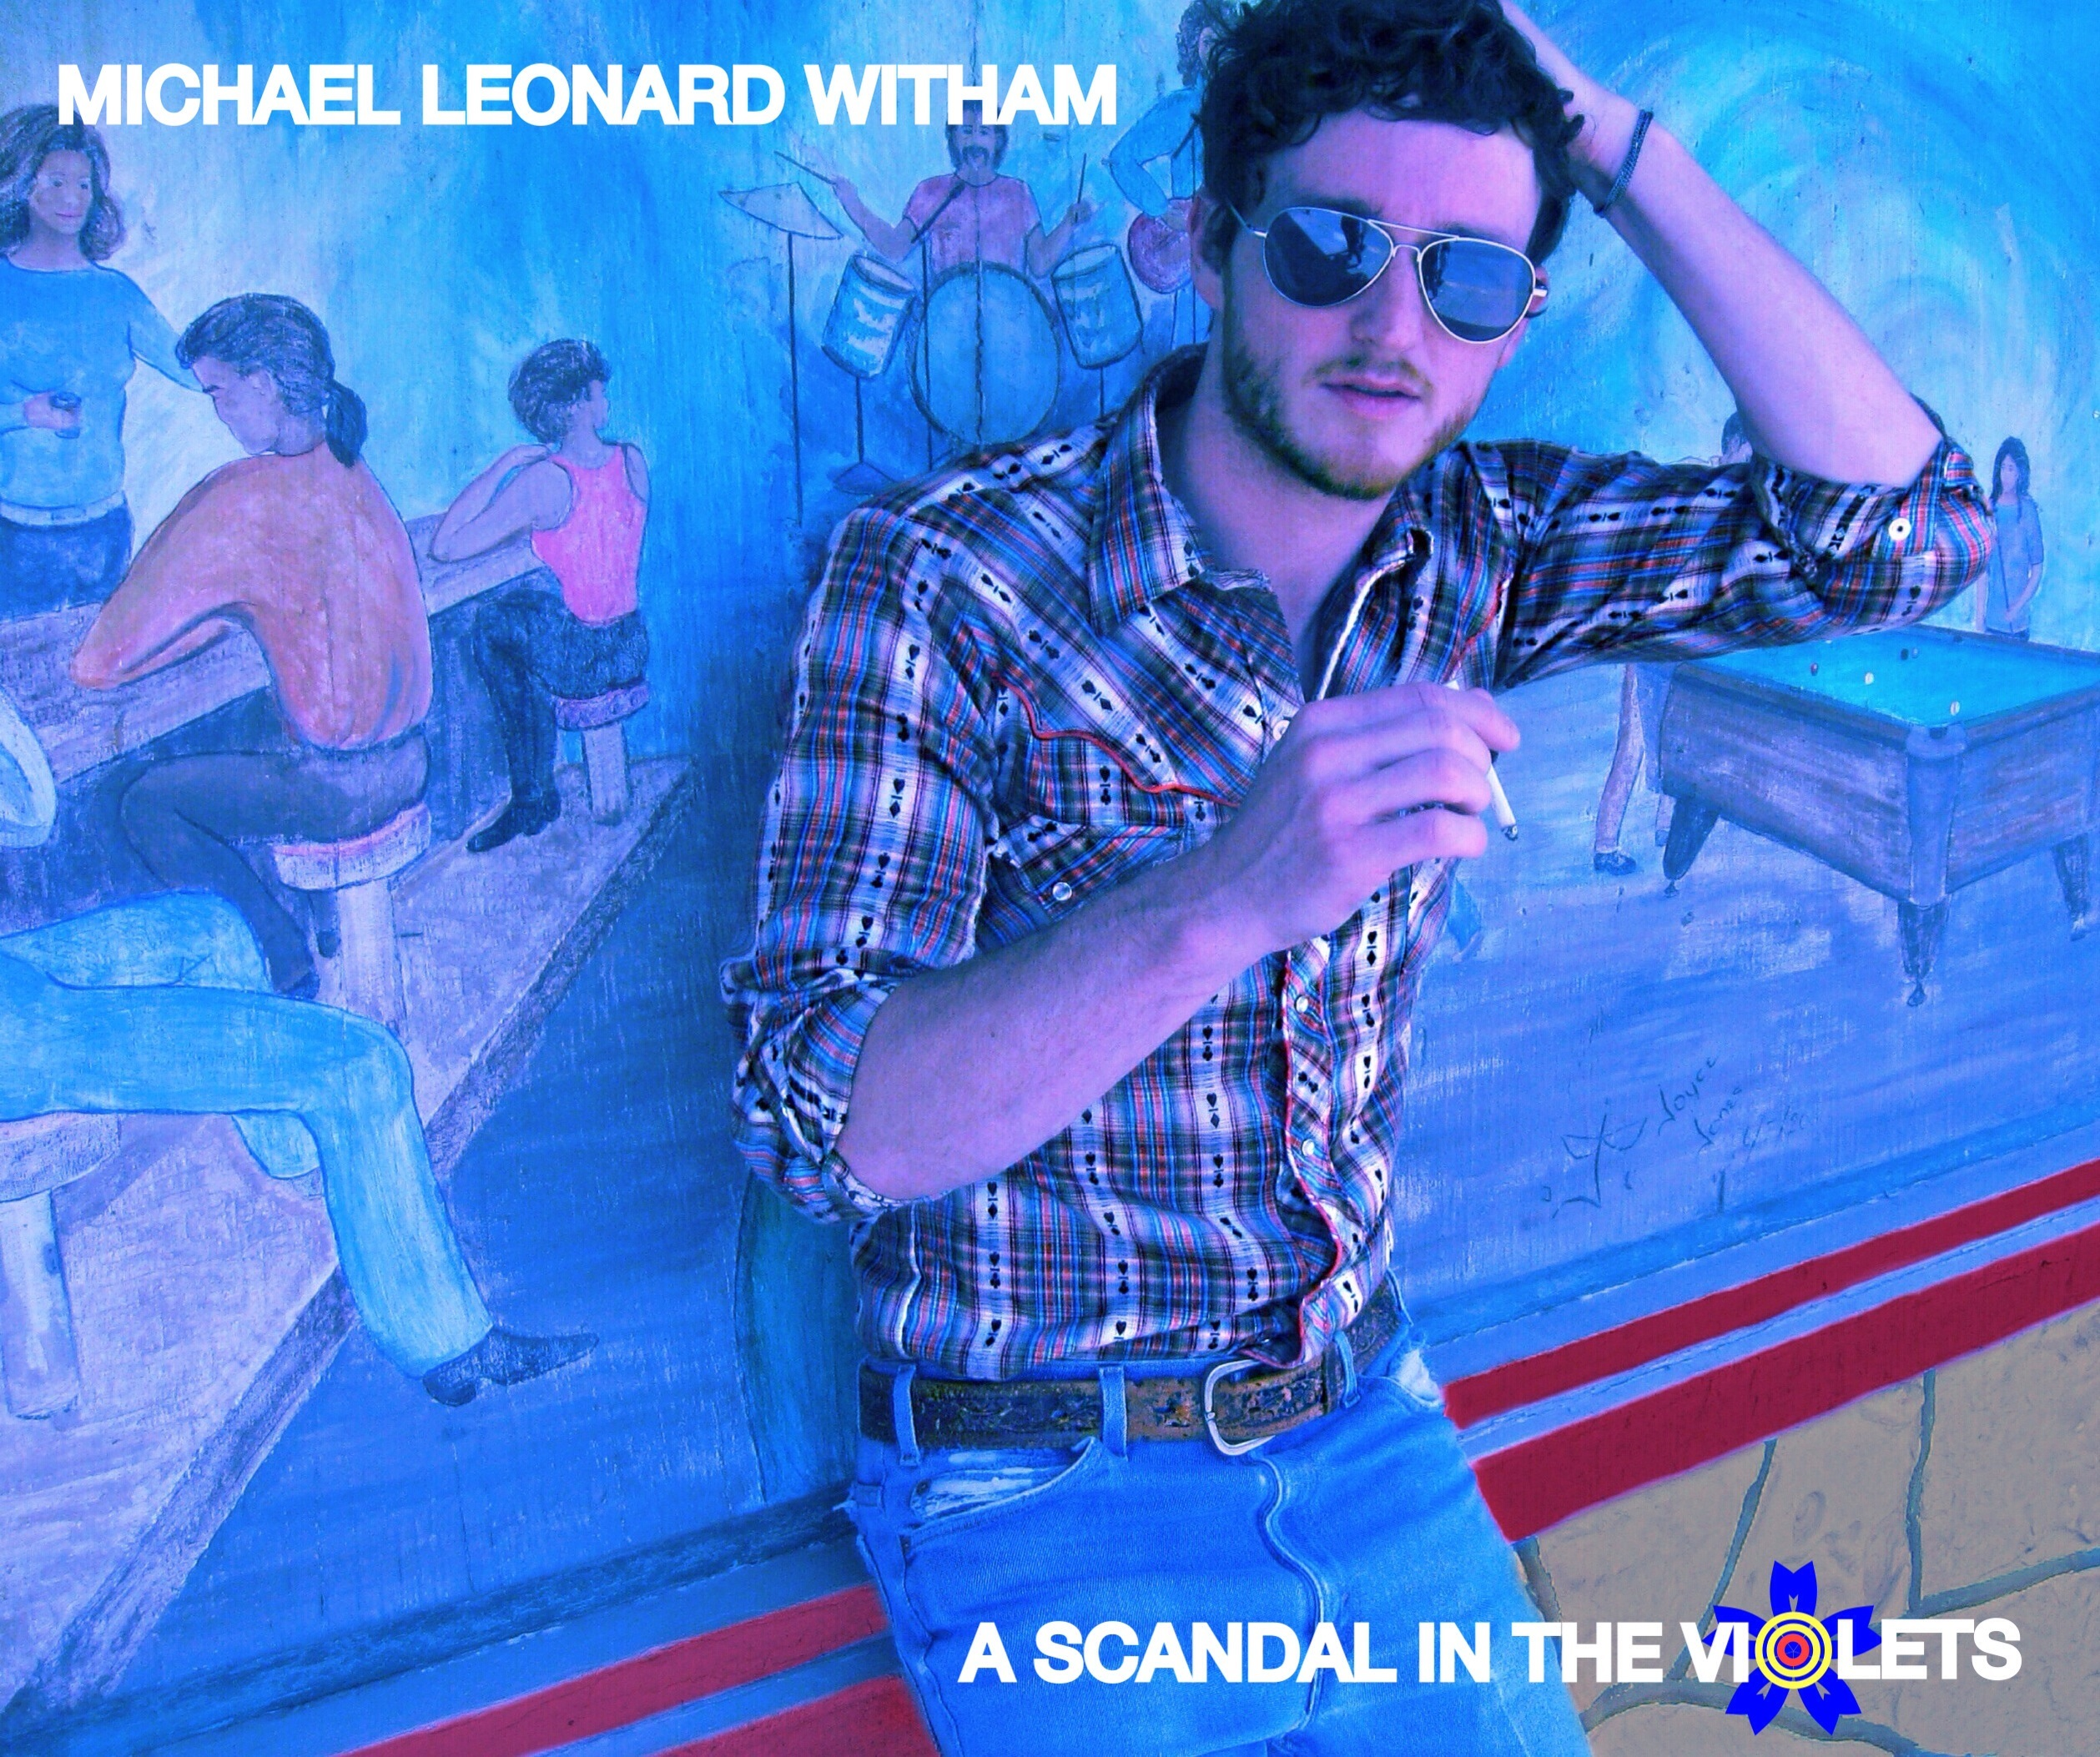 CD Pre-review: A Scandal In The Violets by Michael Leonard Witham